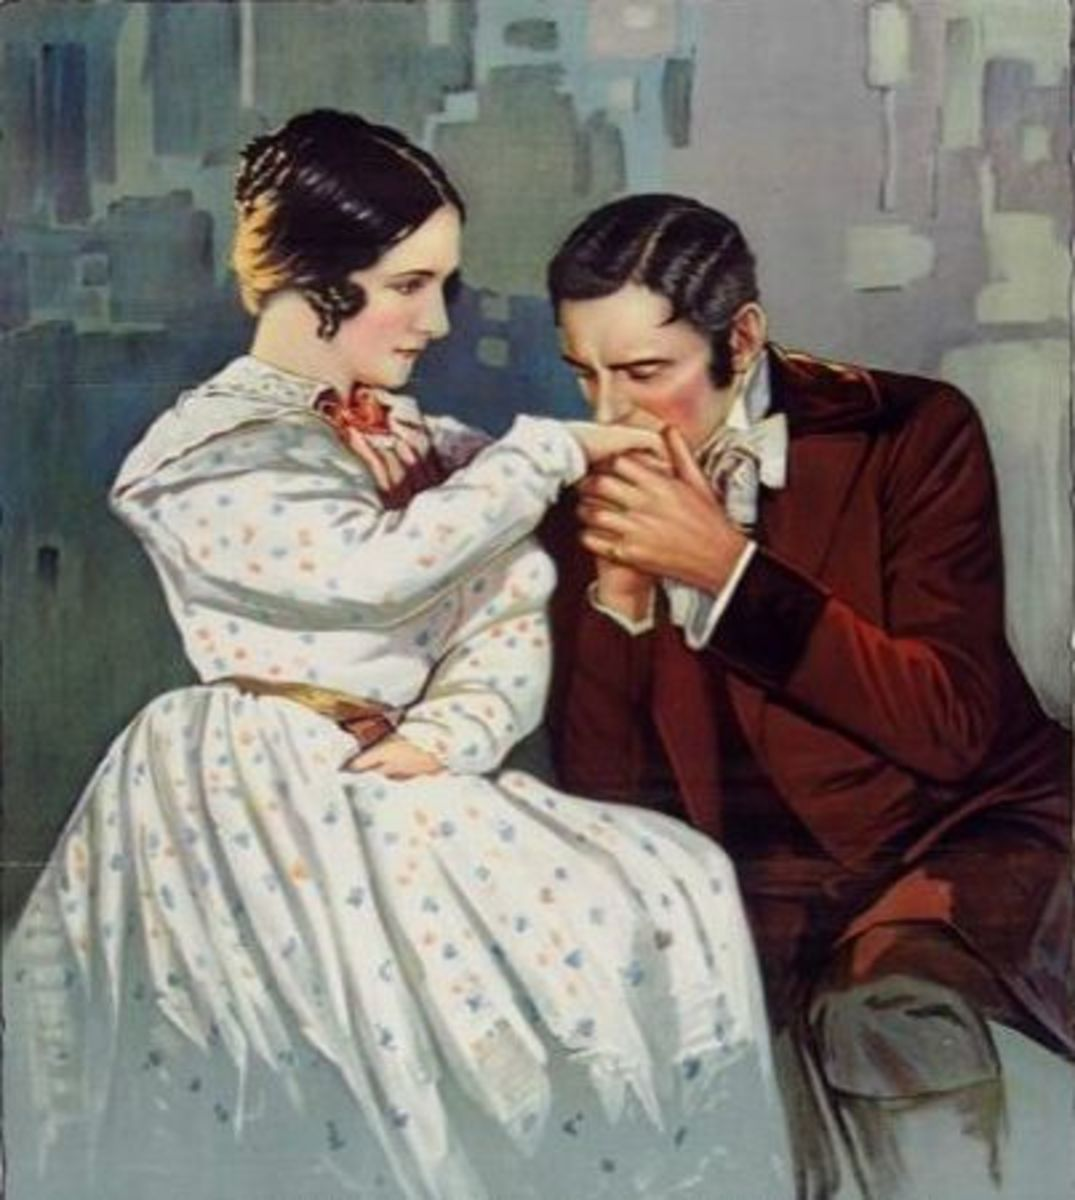 Becoming Helen: The Journey to Compassion in 'Jane Eyre'